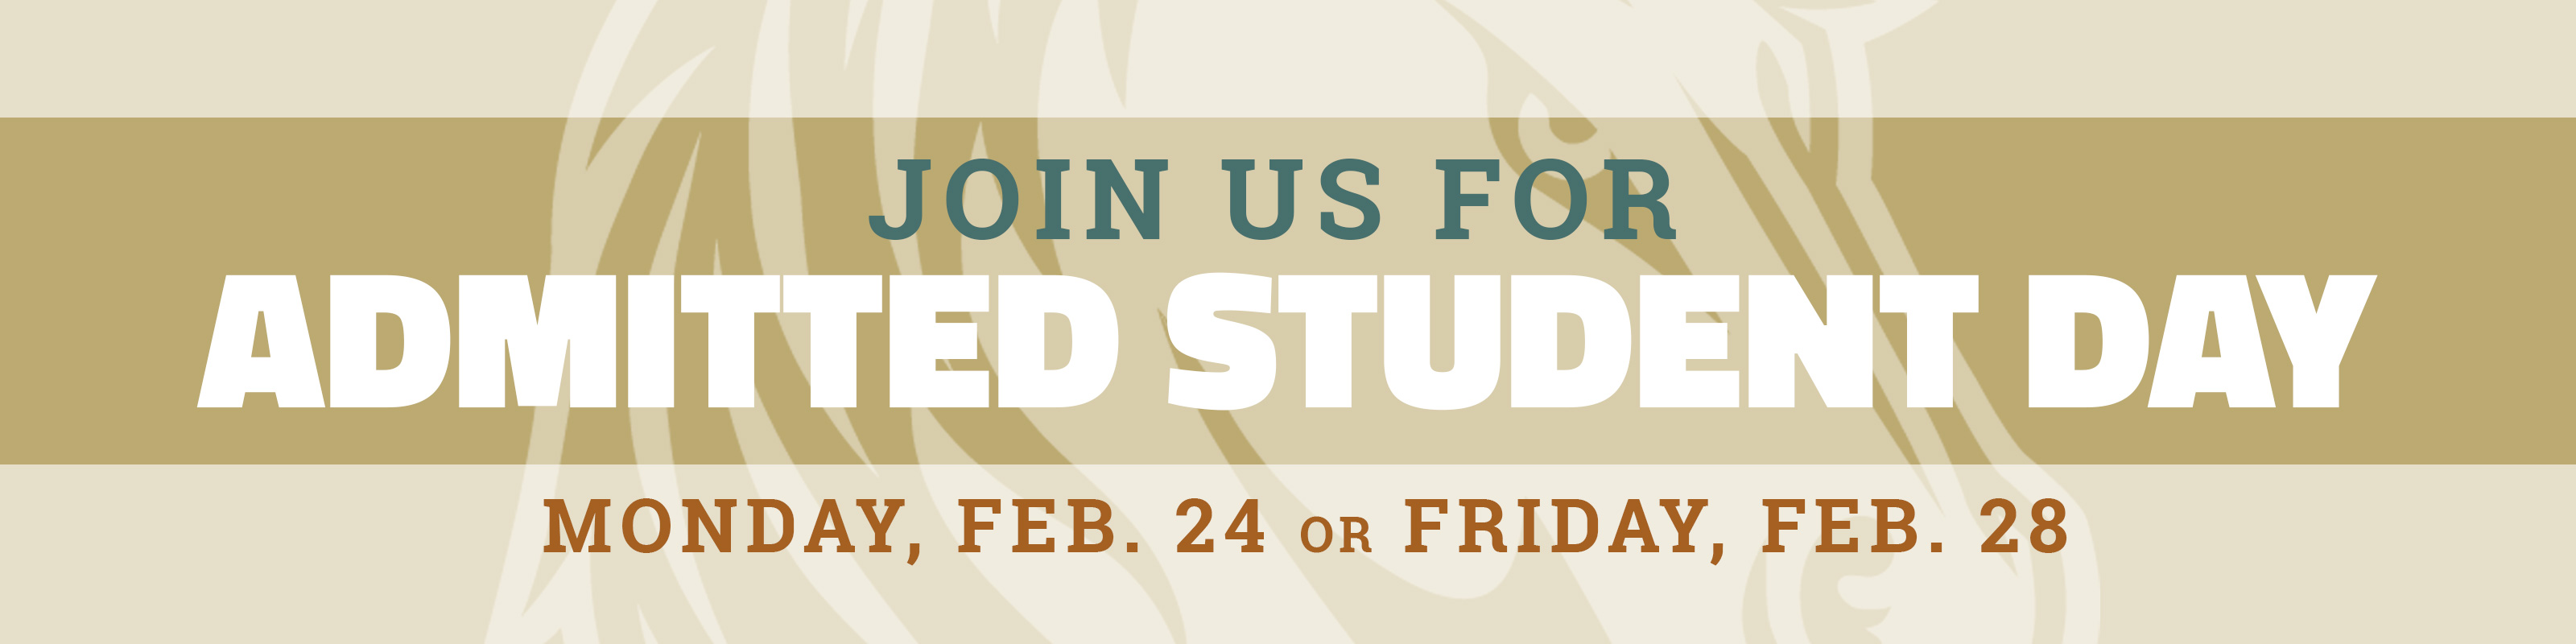 Join us for admitted student day - Monday, February 24th or Friday, February 28th